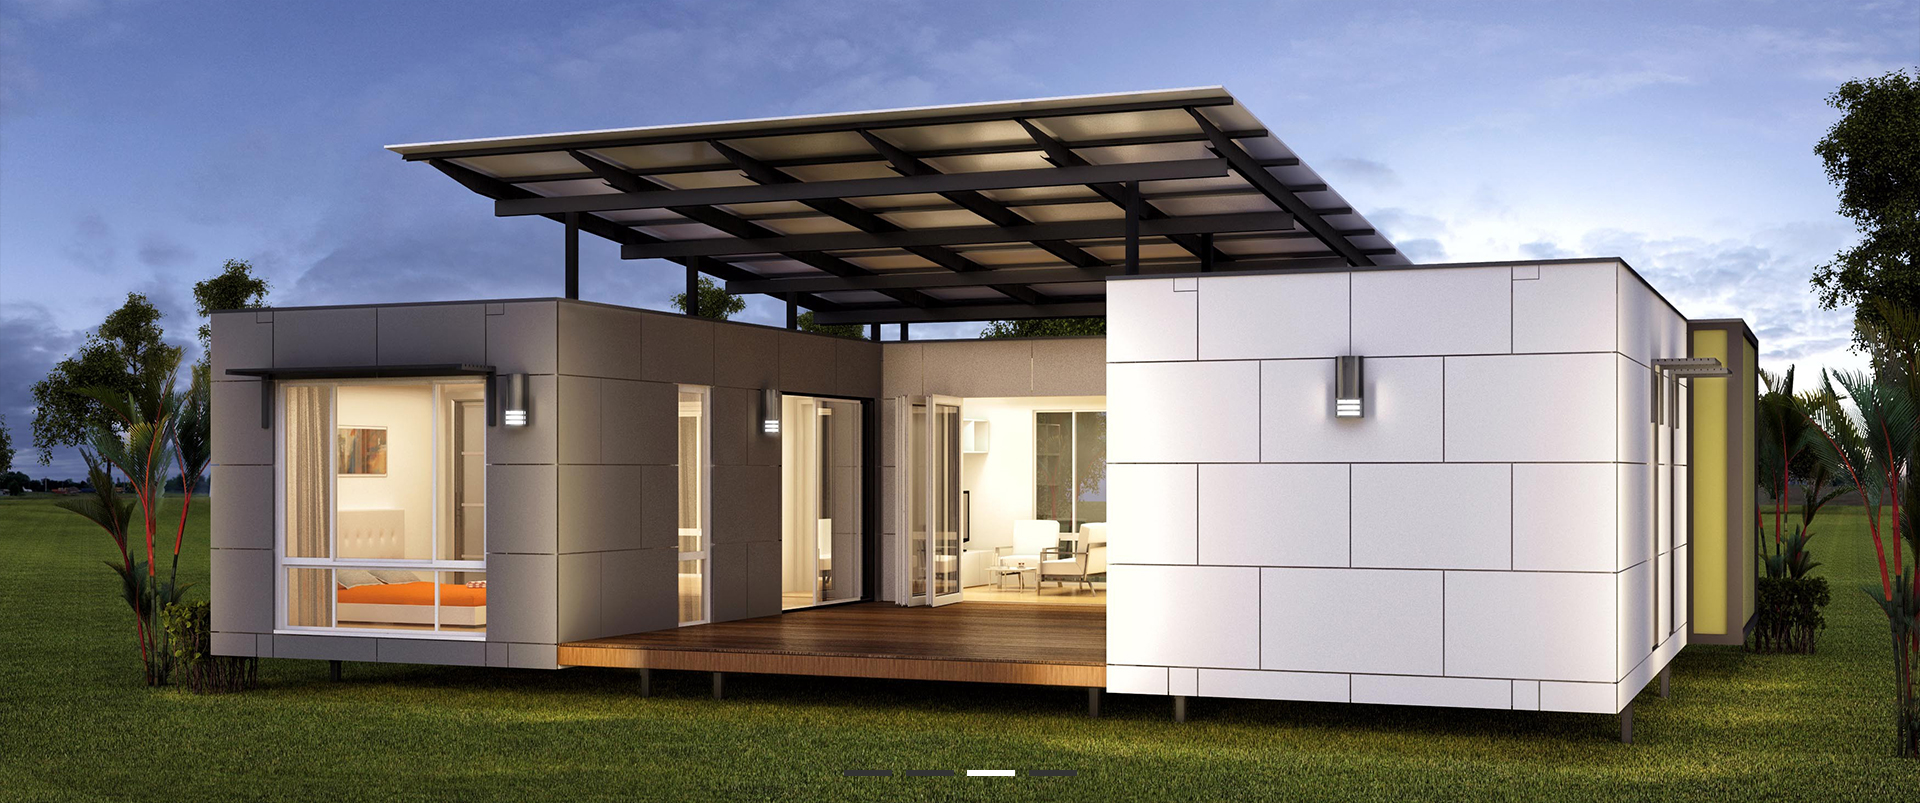 Best Kitchen Gallery: Container House Shipping Container Home Prefabricated Container of Shipping Container Living Quarters on rachelxblog.com